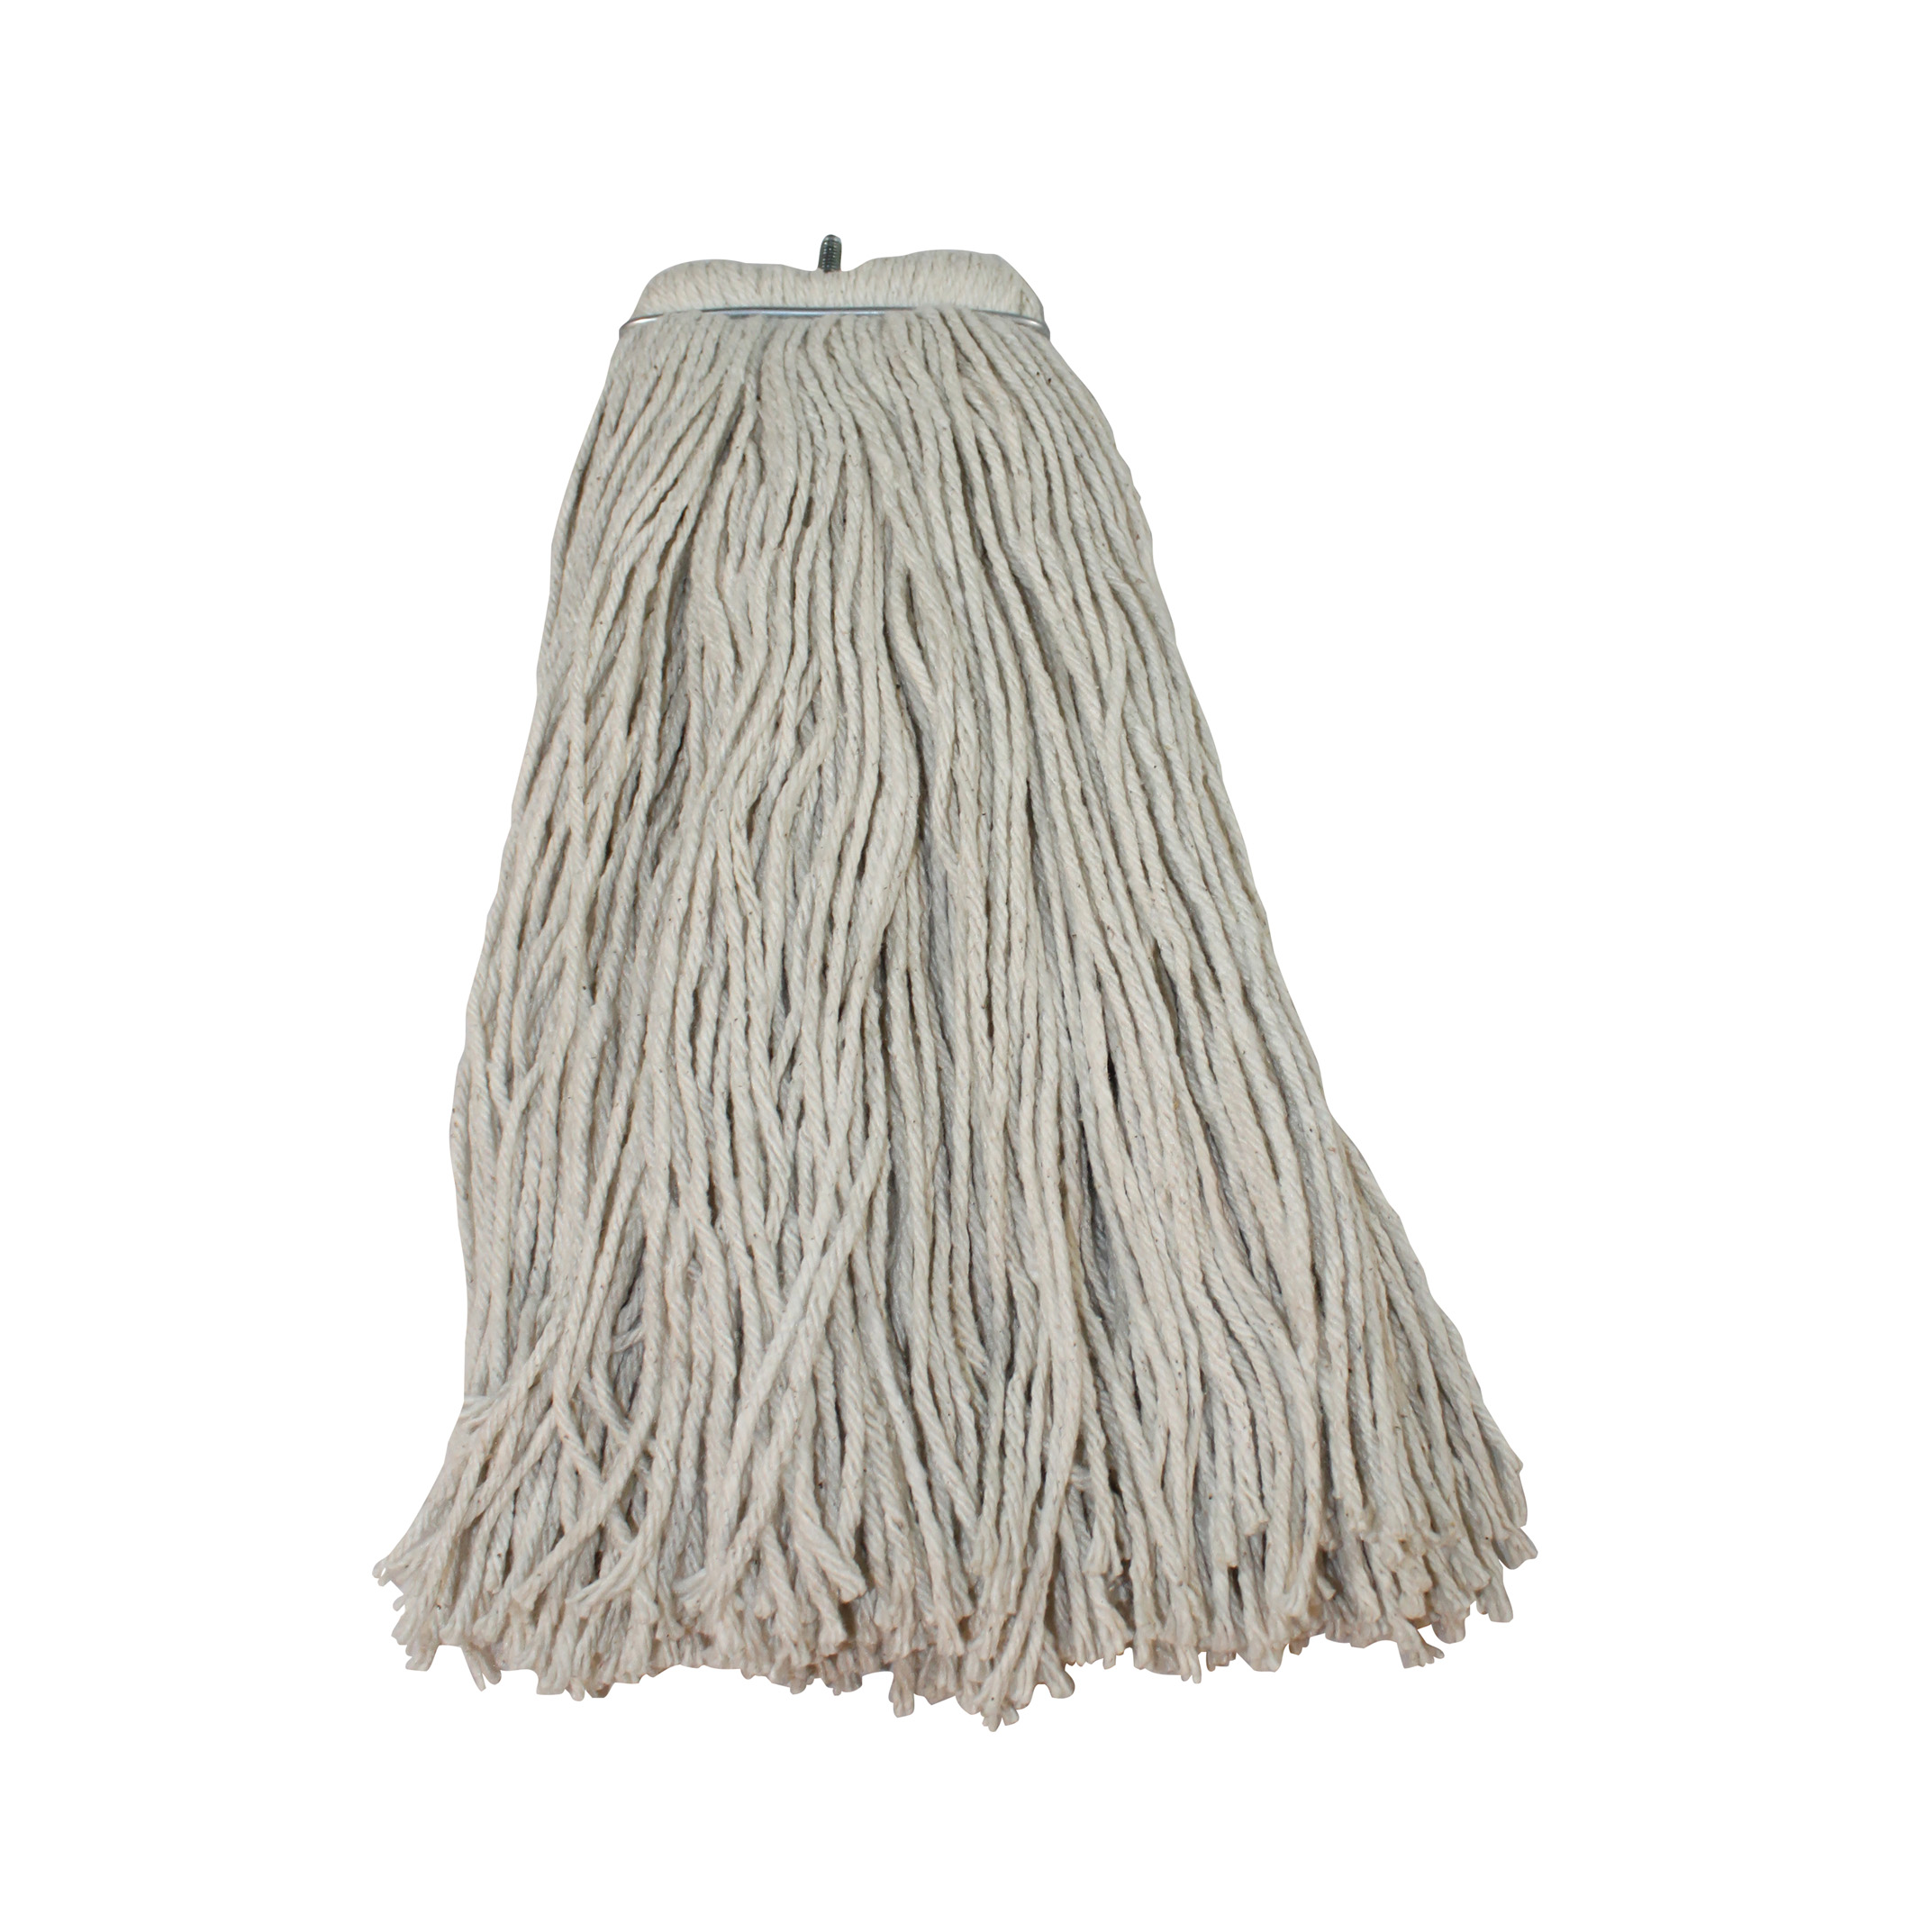 Impact Products 61240 wet mop head